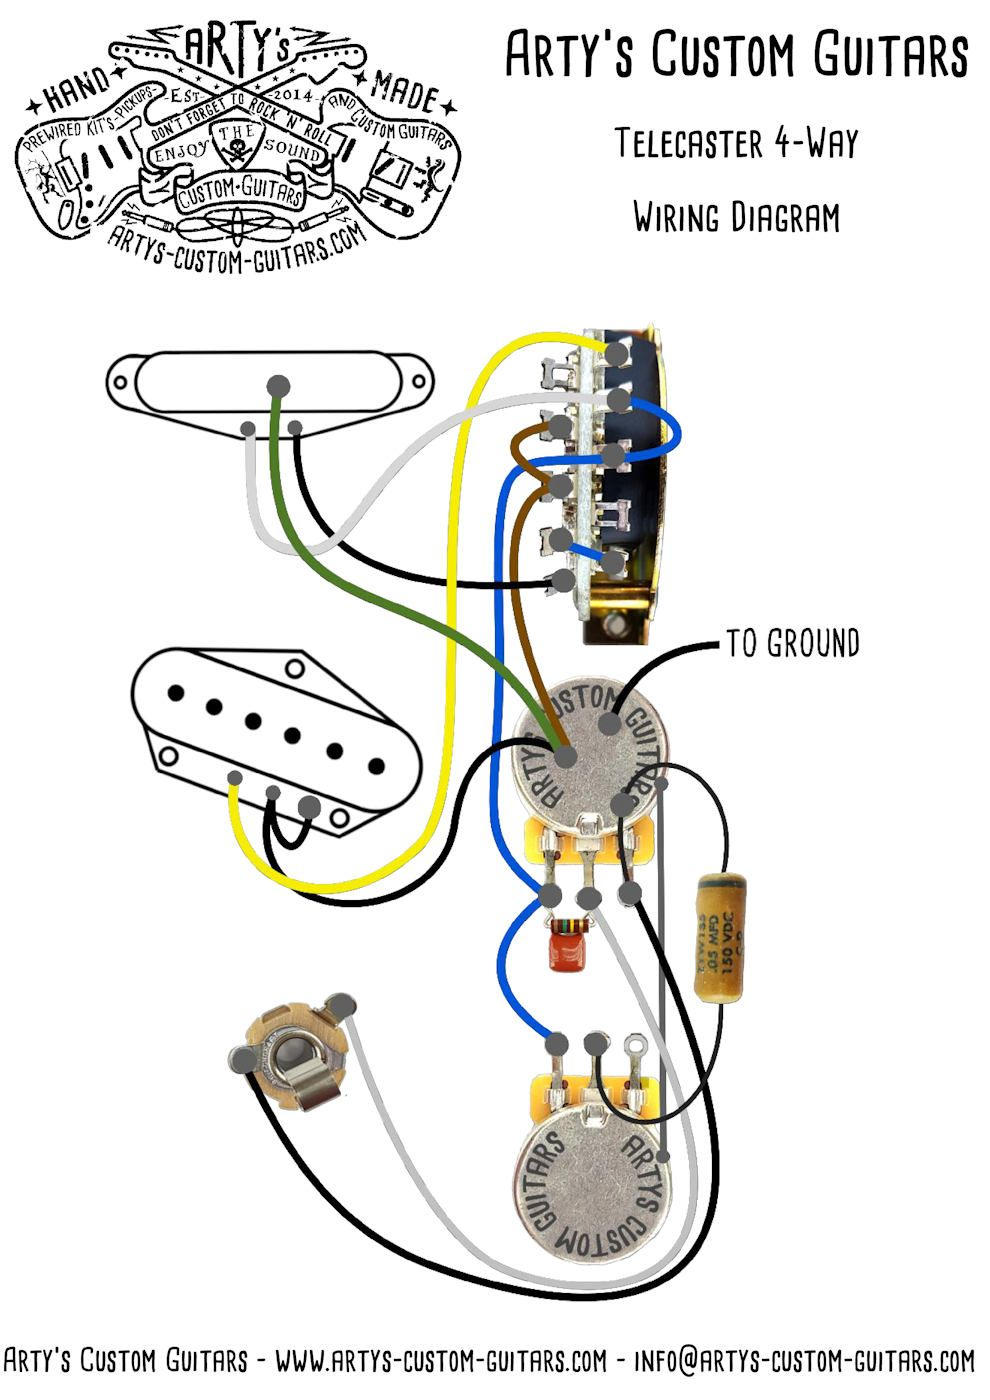 PREWIRED KIT 4Way TELECASTER Tele Fender esquire